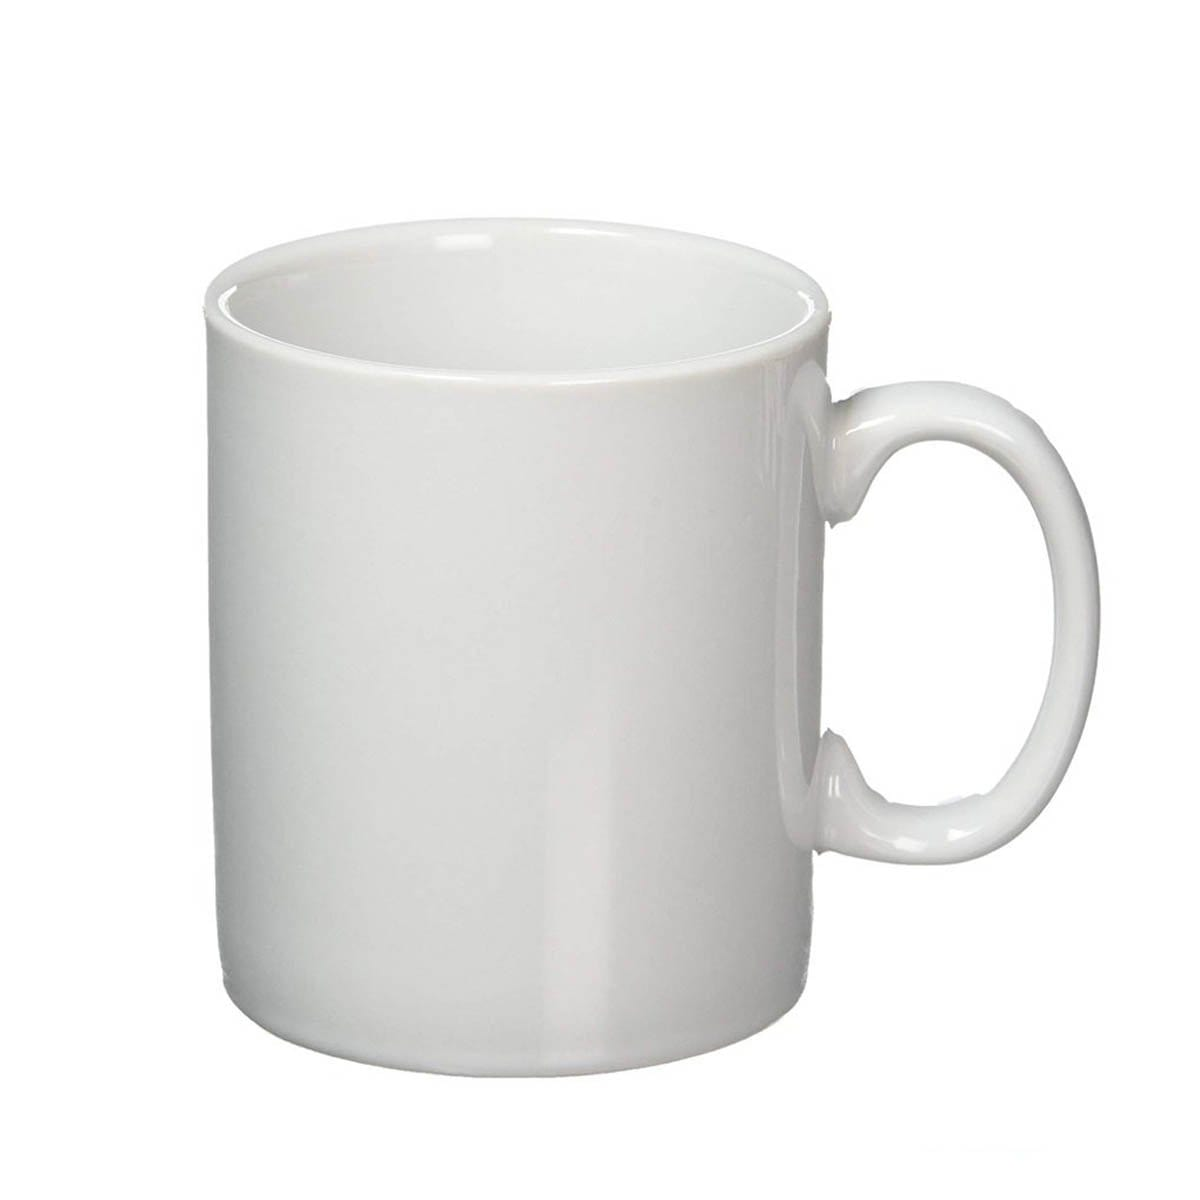 1124/W 11oz White Color Coffee Mug